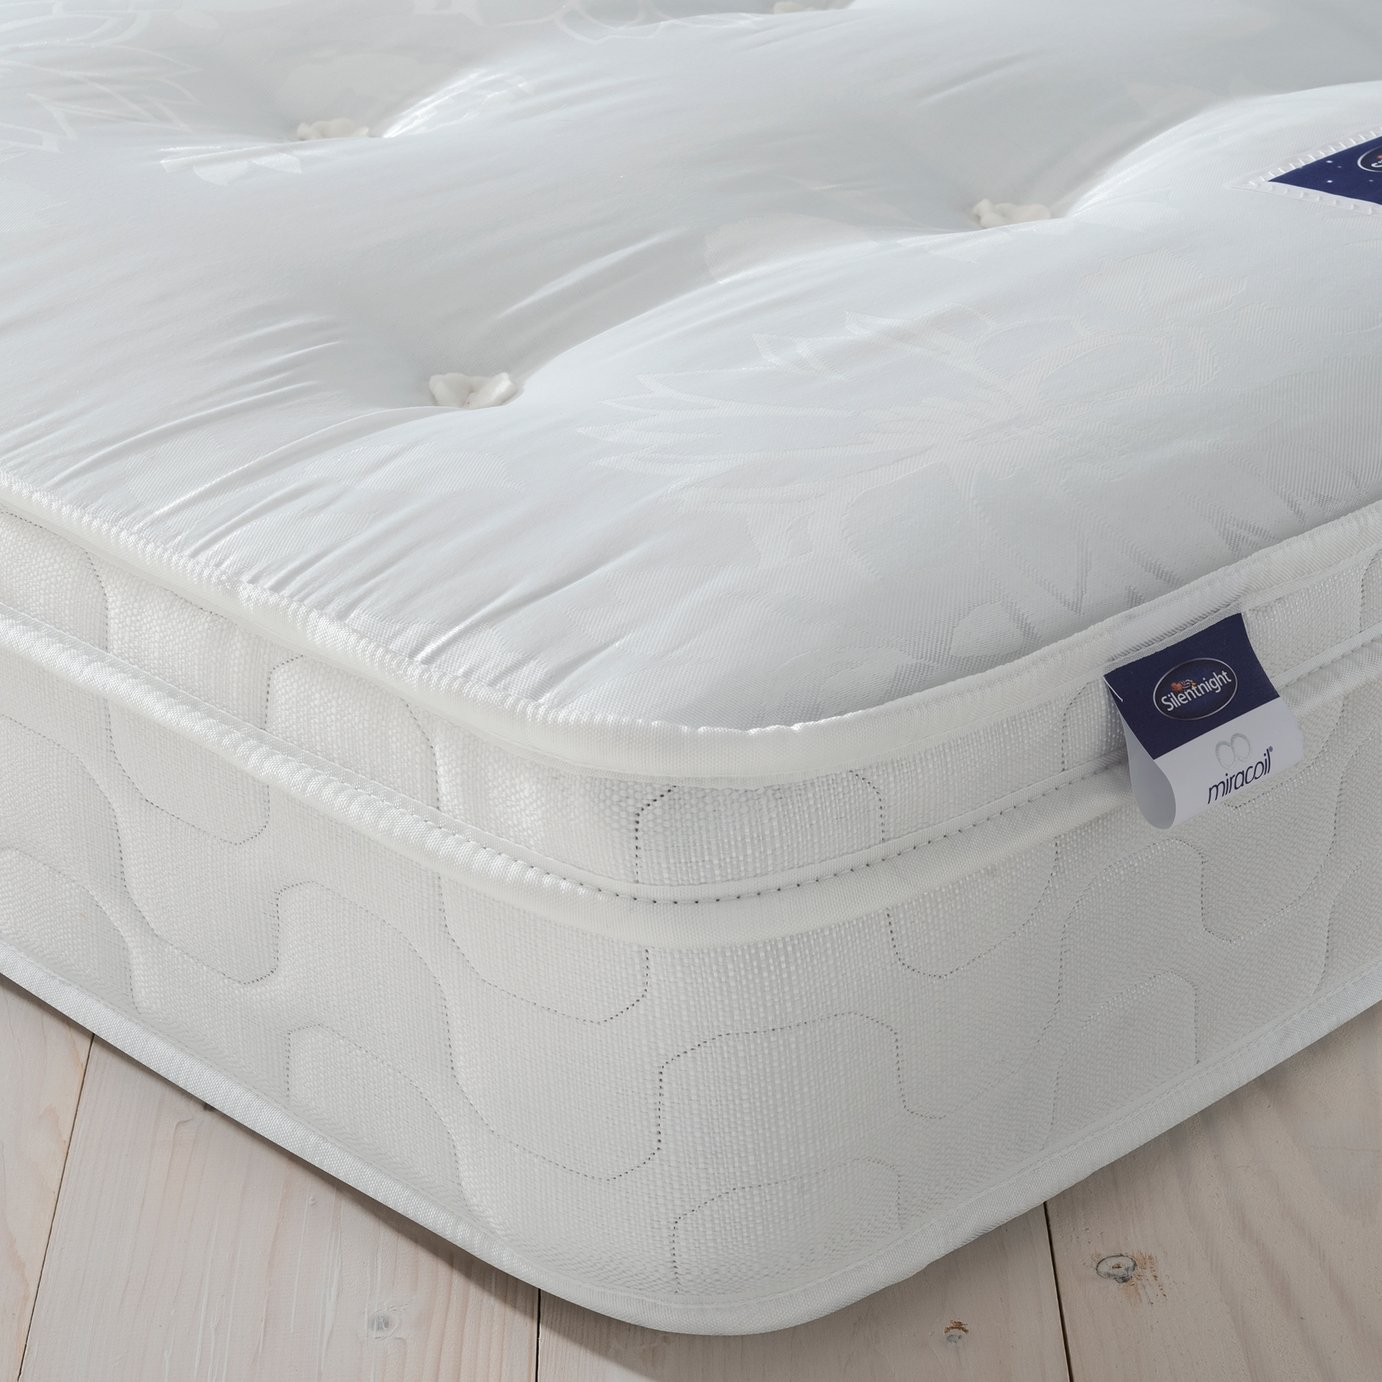 Silentnight Miracoil Travis Tufted Ortho Single Mattress